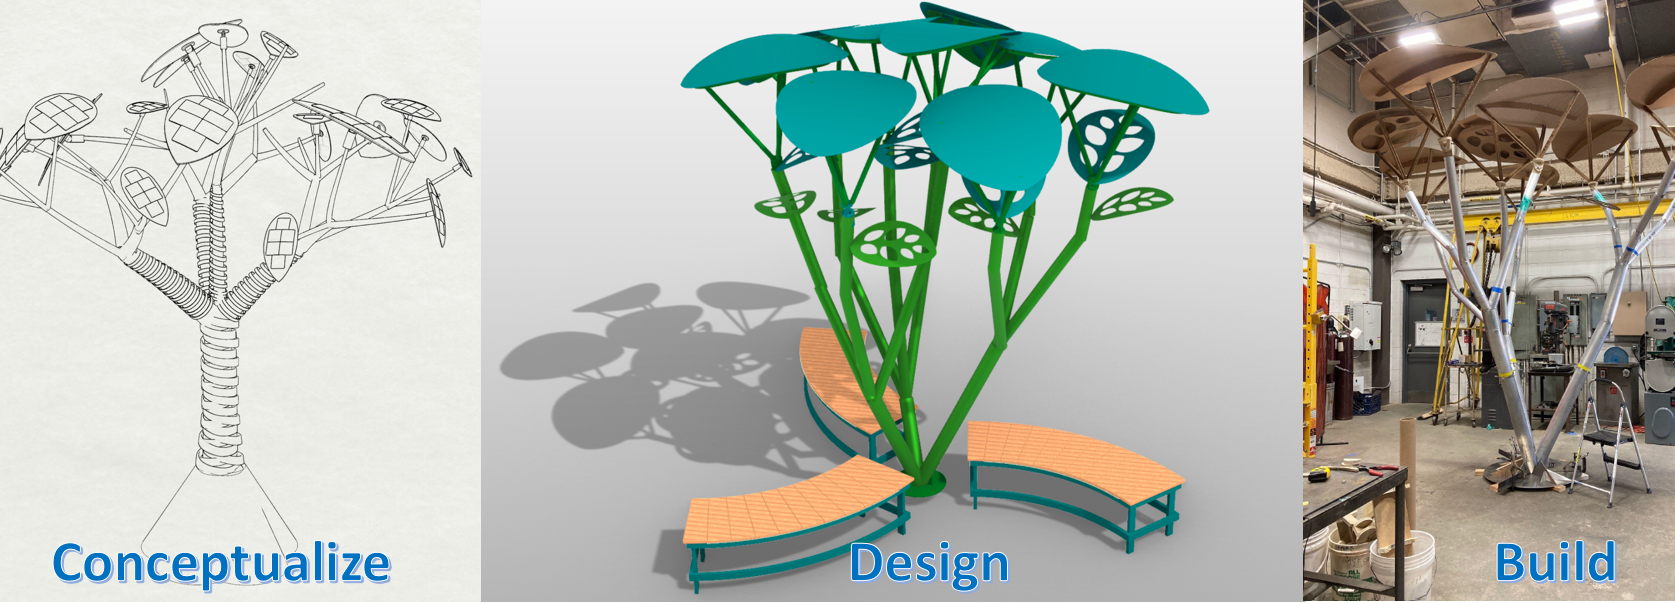 3 phases of Solart tree: Concept, Design, and Build